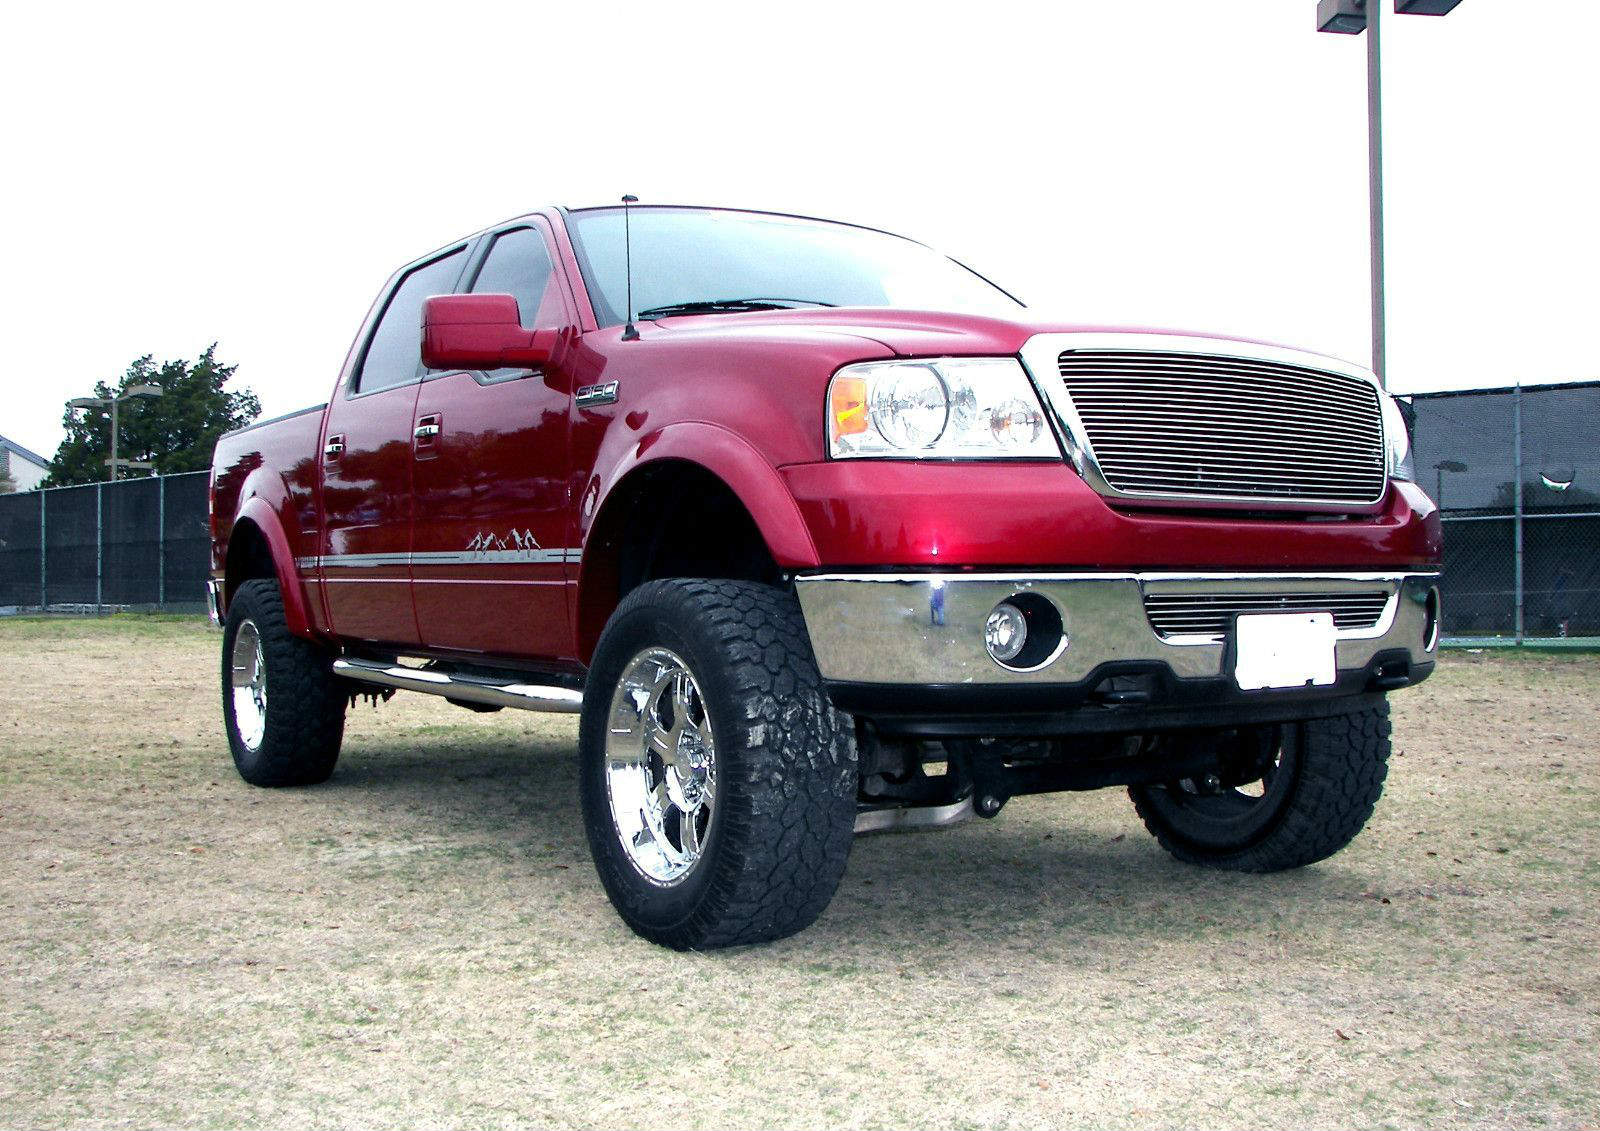 ford lifted f150 2007 lariat 4x4 supercrew trucks 150 truck cars power muscle